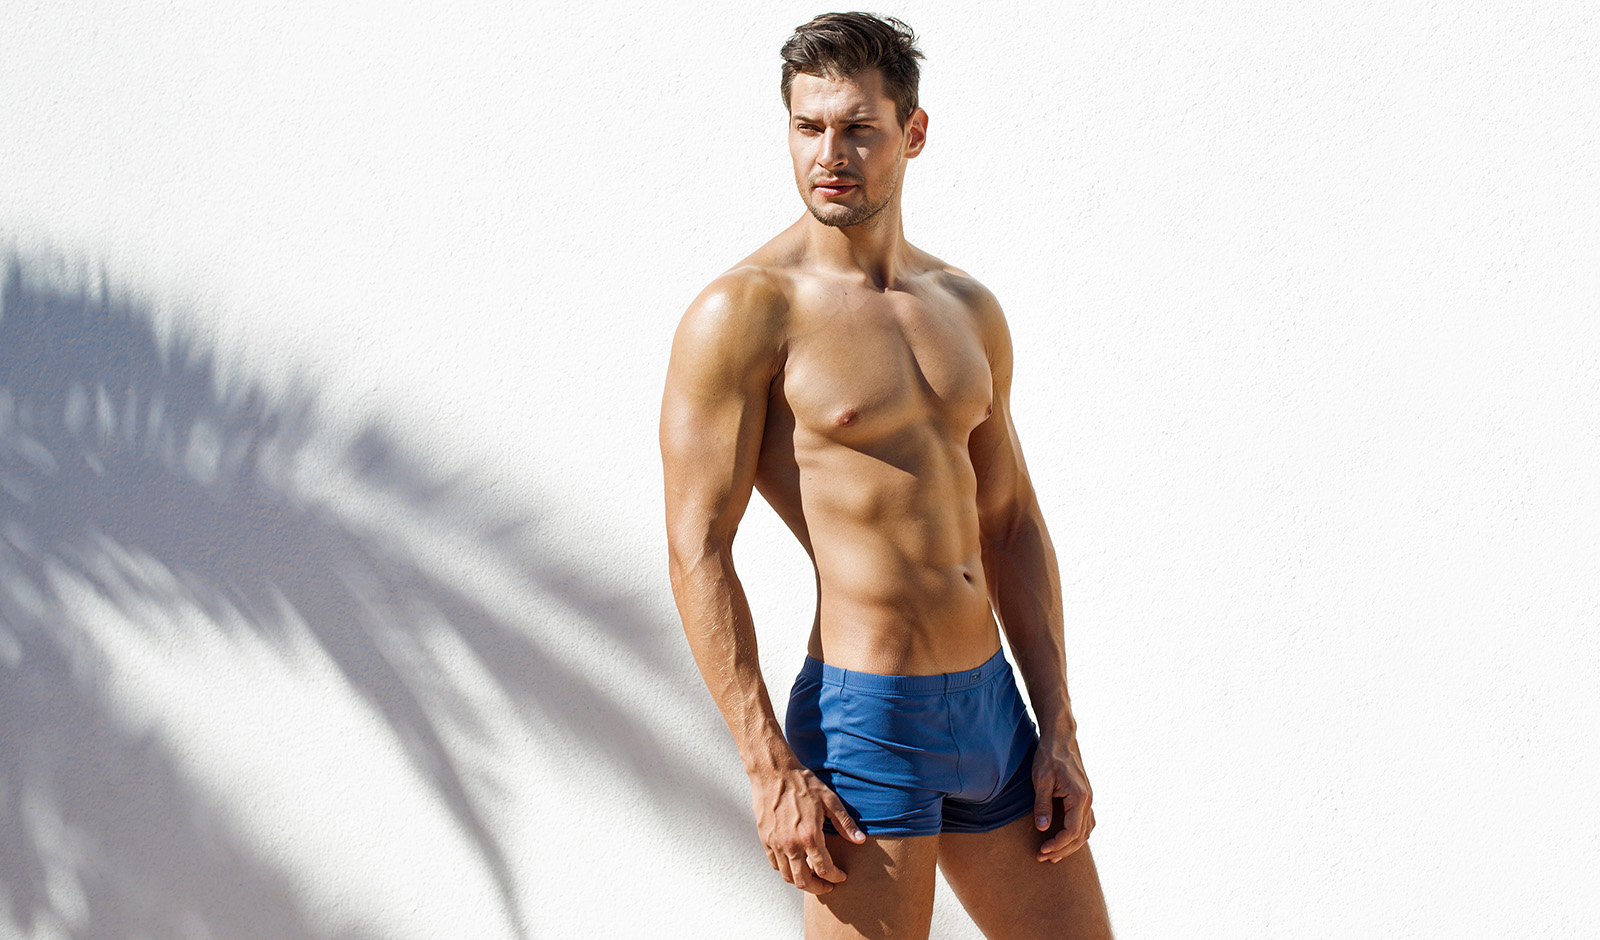 why-briefs-are-the-underwear-of-choice-main-image-man-in-briefs